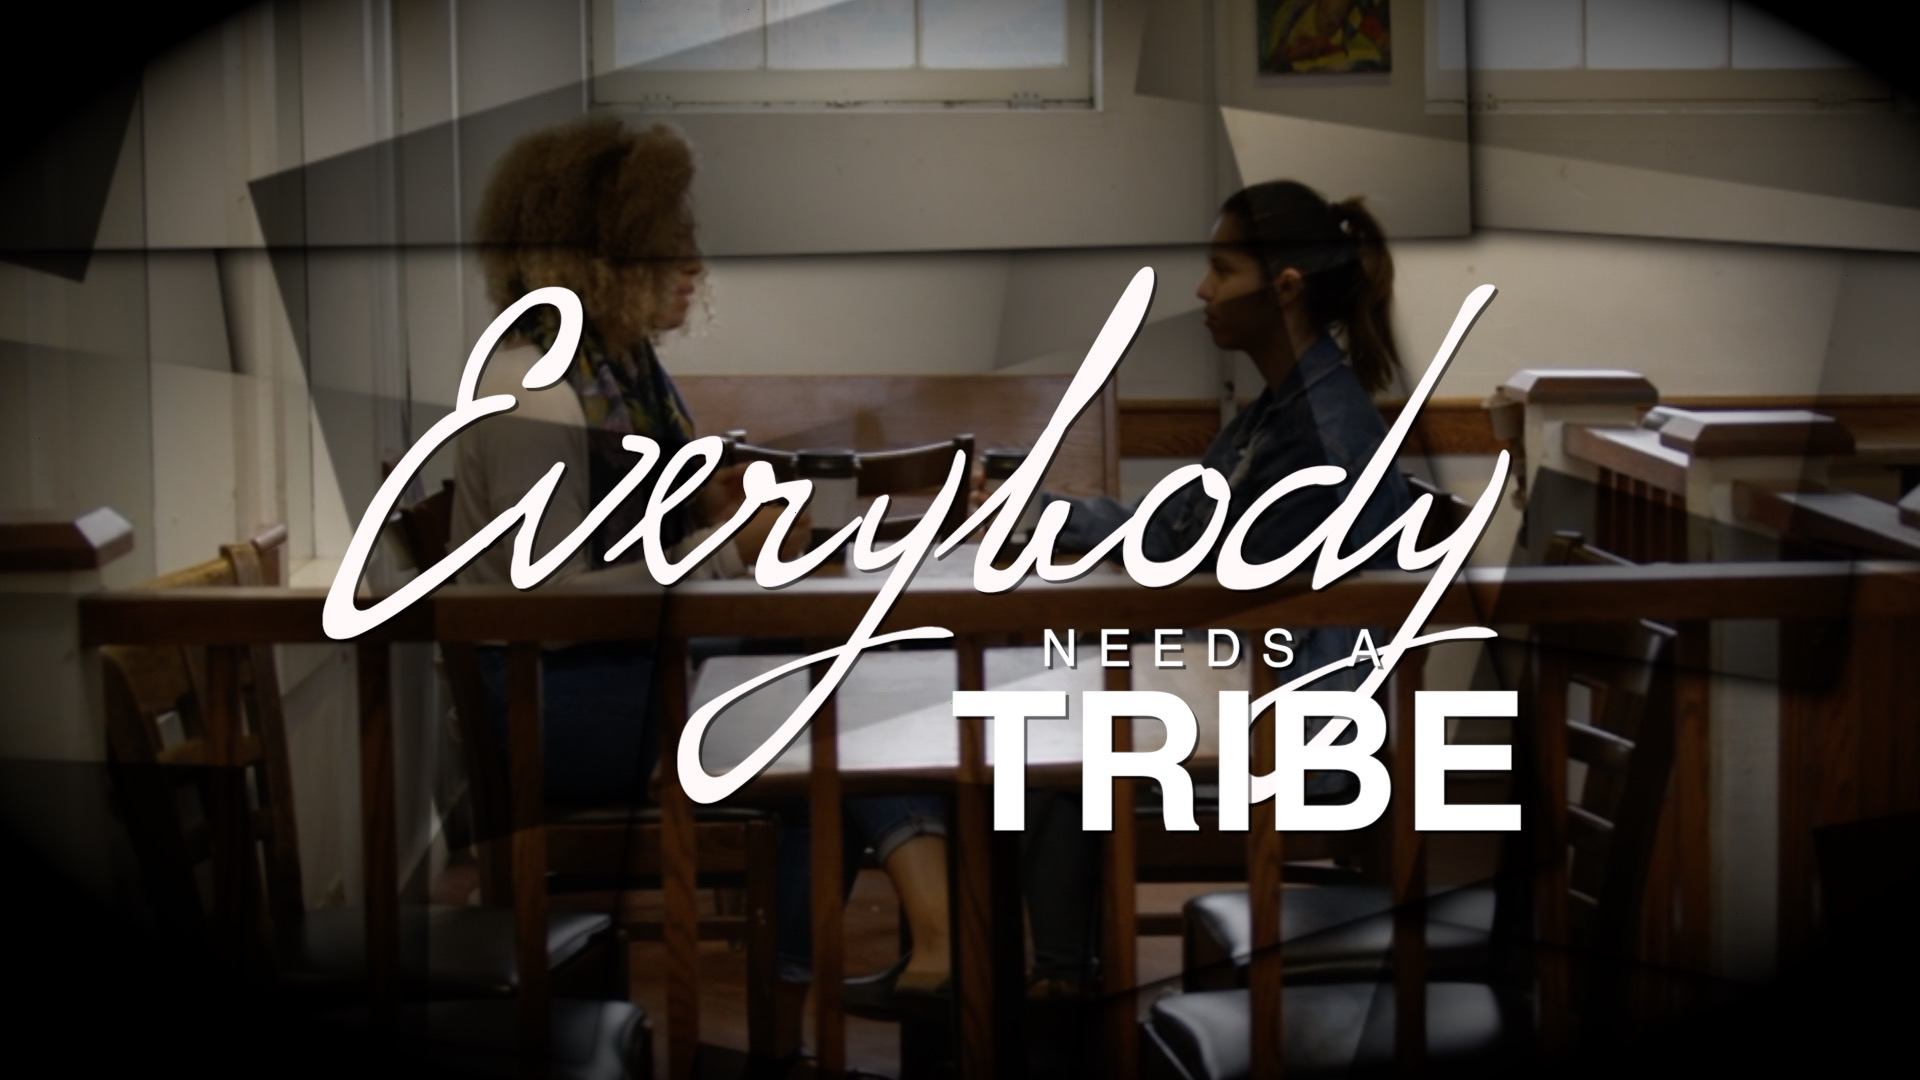 Everybody Needs a TRIBE